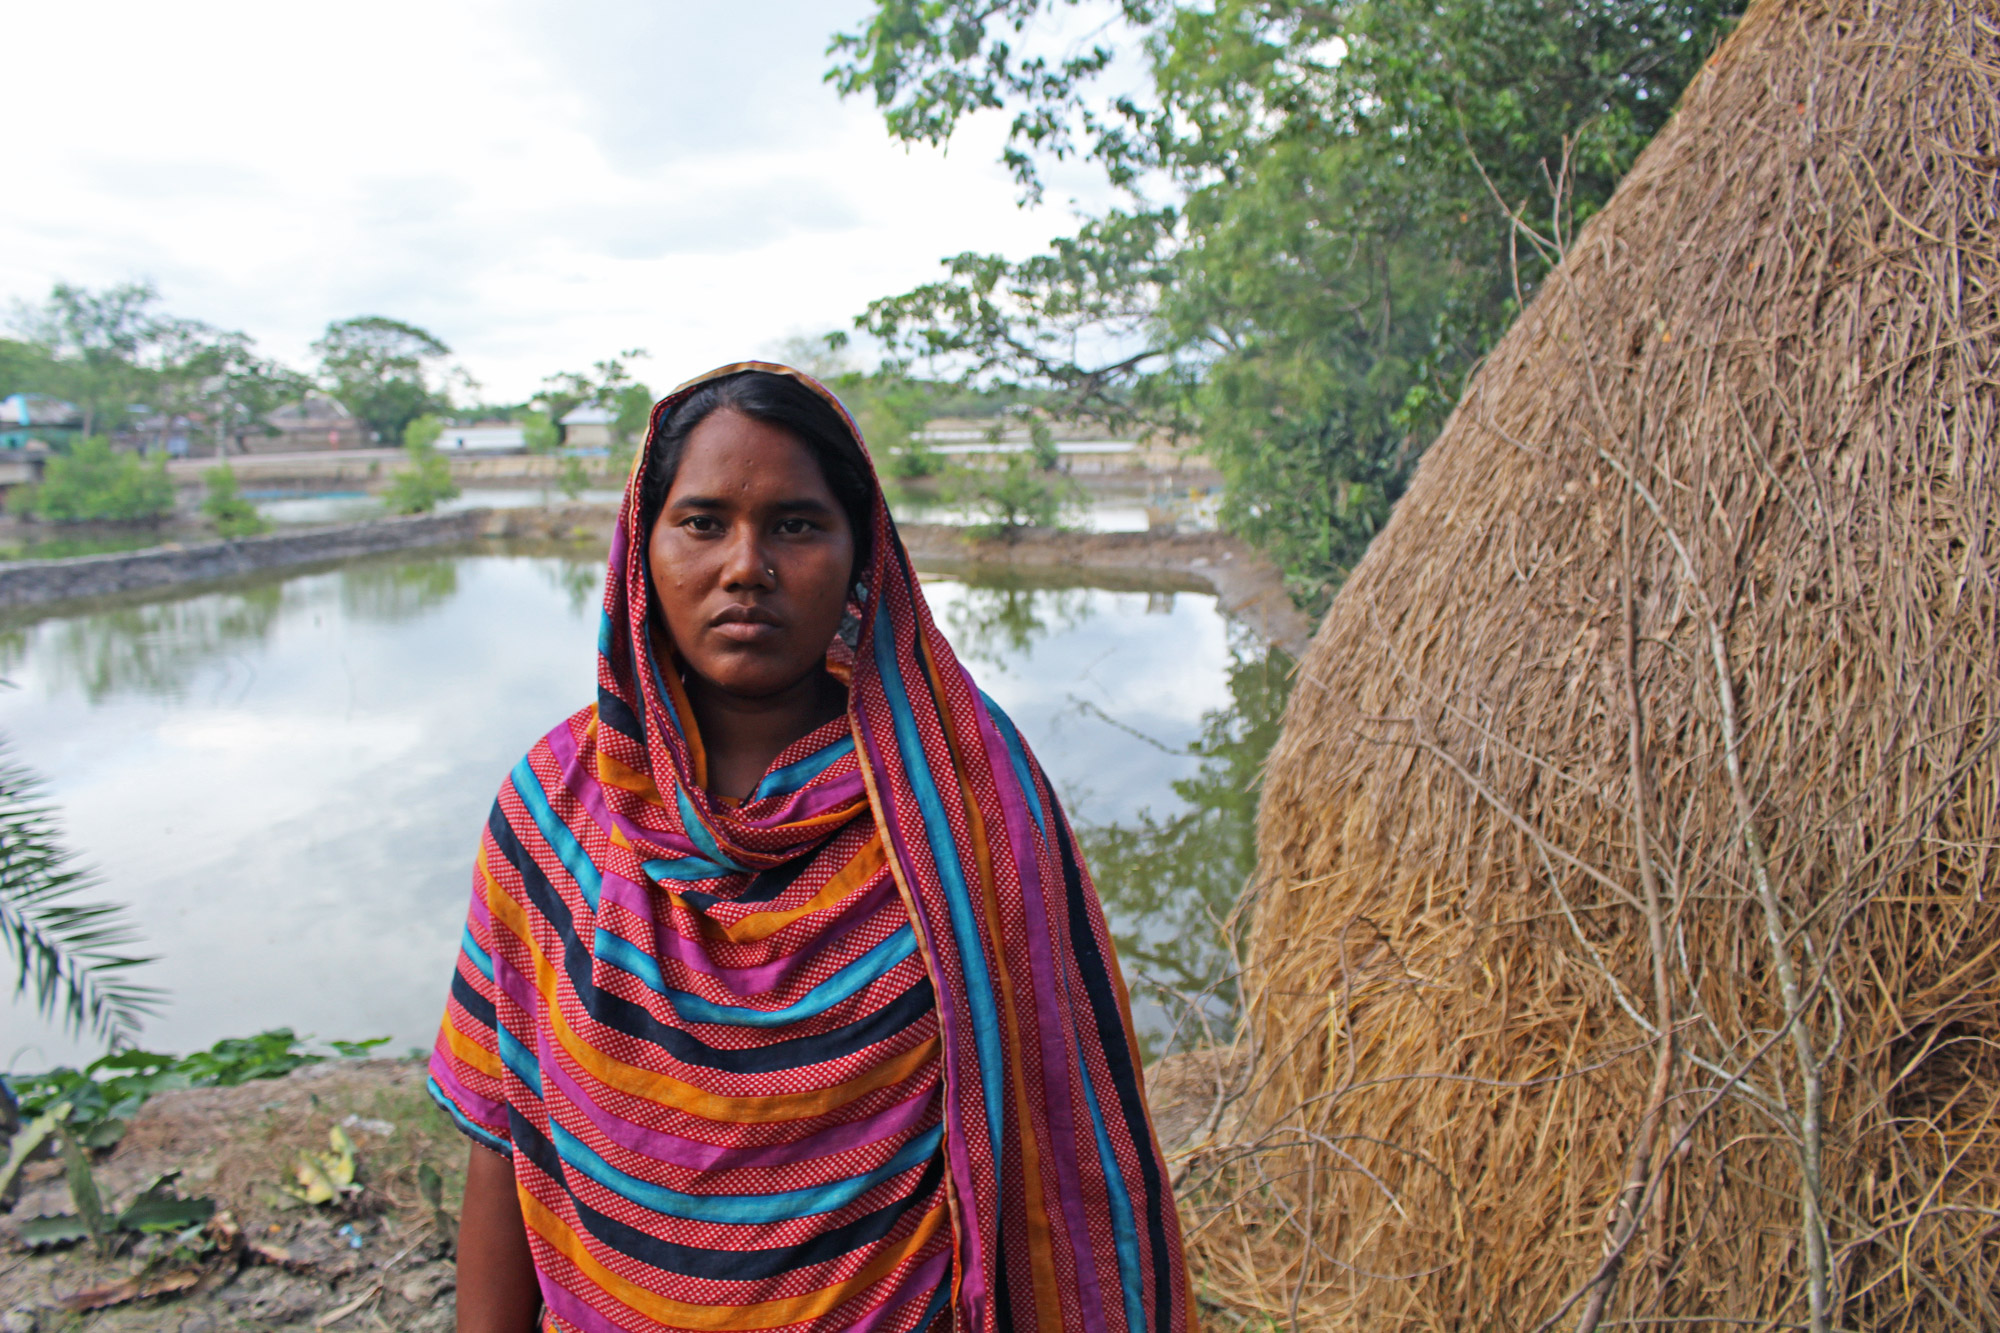 """The agriculture is not good here, the saline water comes from below in the soil. Some time after planting paddy, it becomes red and dies out,"" Romesa Khatun 27, said. (Photo by Neha Thirani Bagri/GroundTruth)"